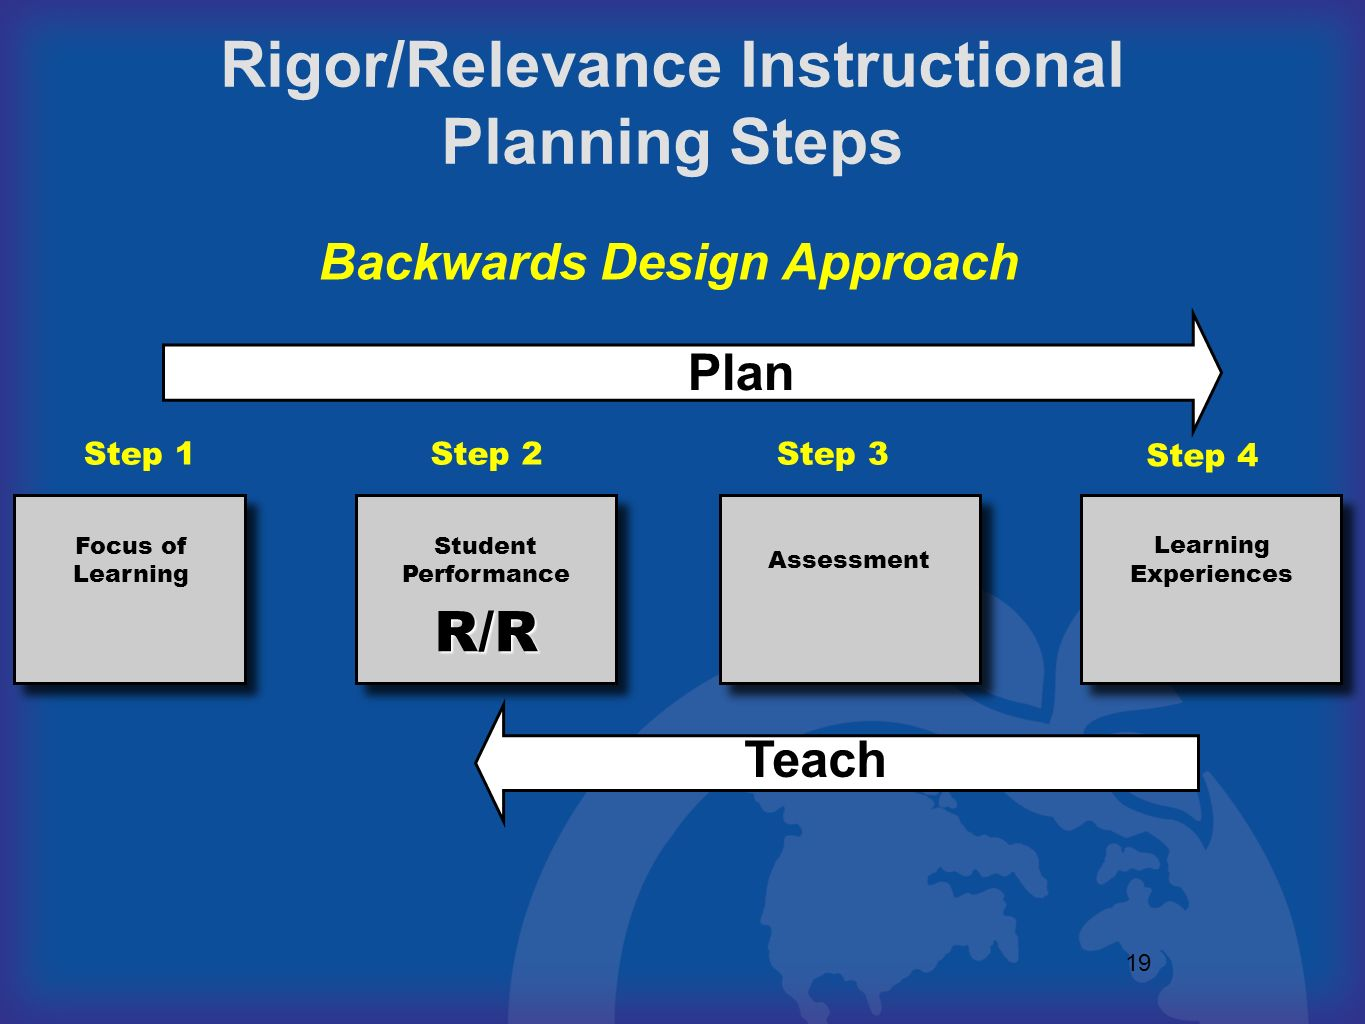 Rigor/Relevance Instructional Backwards Design Approach